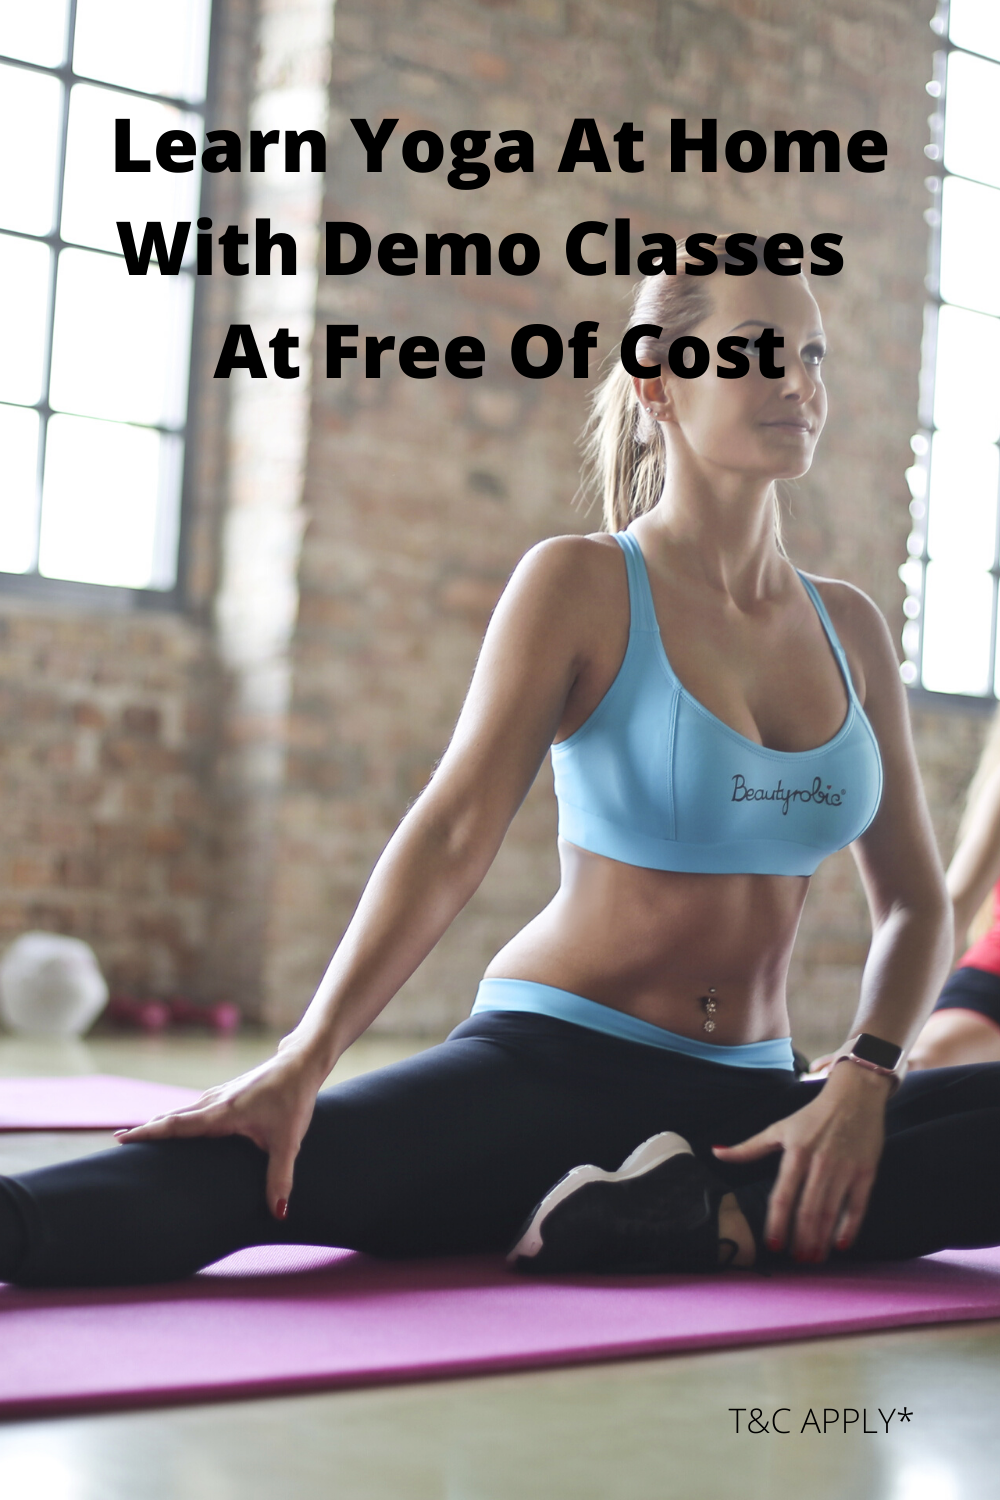 Learn Yoga At Home With Demo Classes At Free Of Cost Learn Yoga Online Free Yoga Online Training Learning Yoga On Y In 2020 Learn Yoga Yoga At Home Free Online Yoga